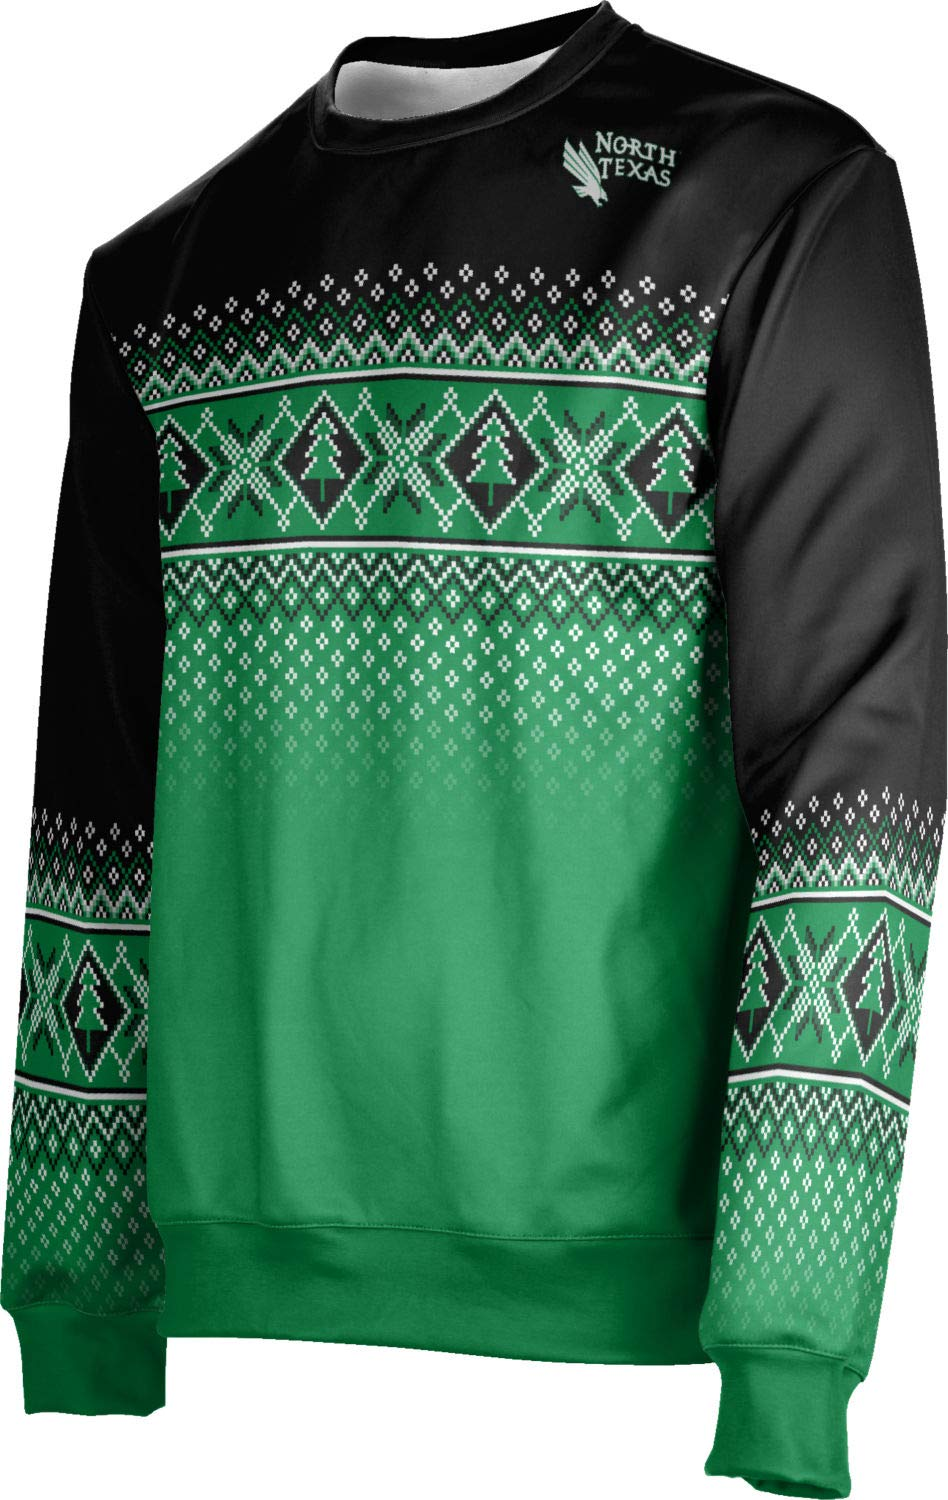 Apparel ProSphere Men/'s University of Houston Ugly Holiday Tradition Sweater